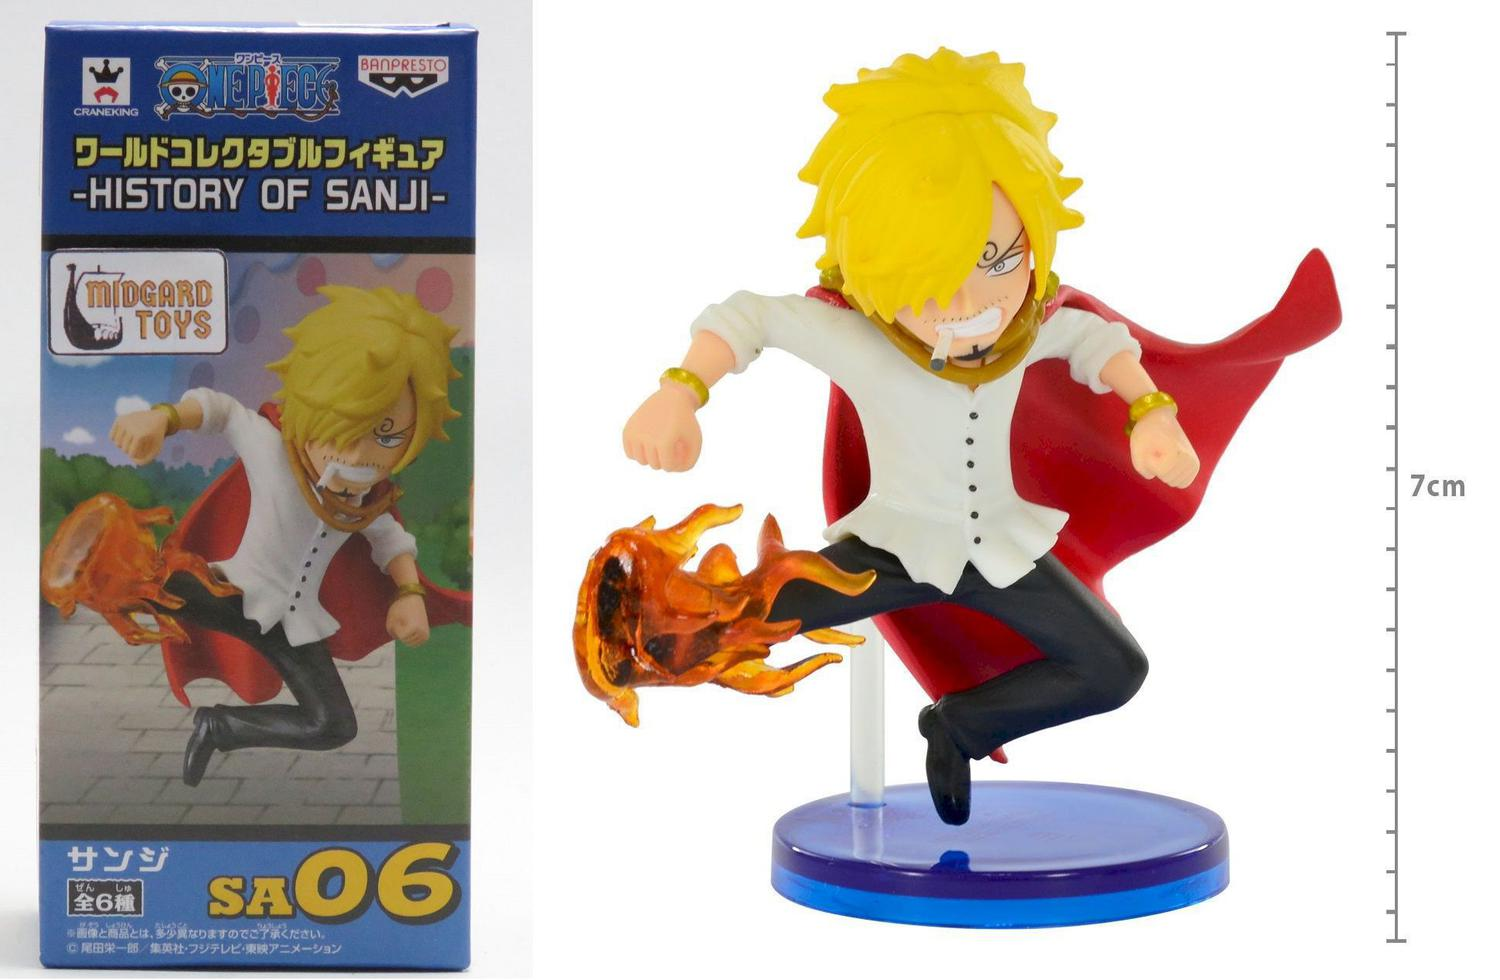 Action Figure Sanji History Of Sanji One Piece Wcf Banpresto Action Figures Magazine Luiza